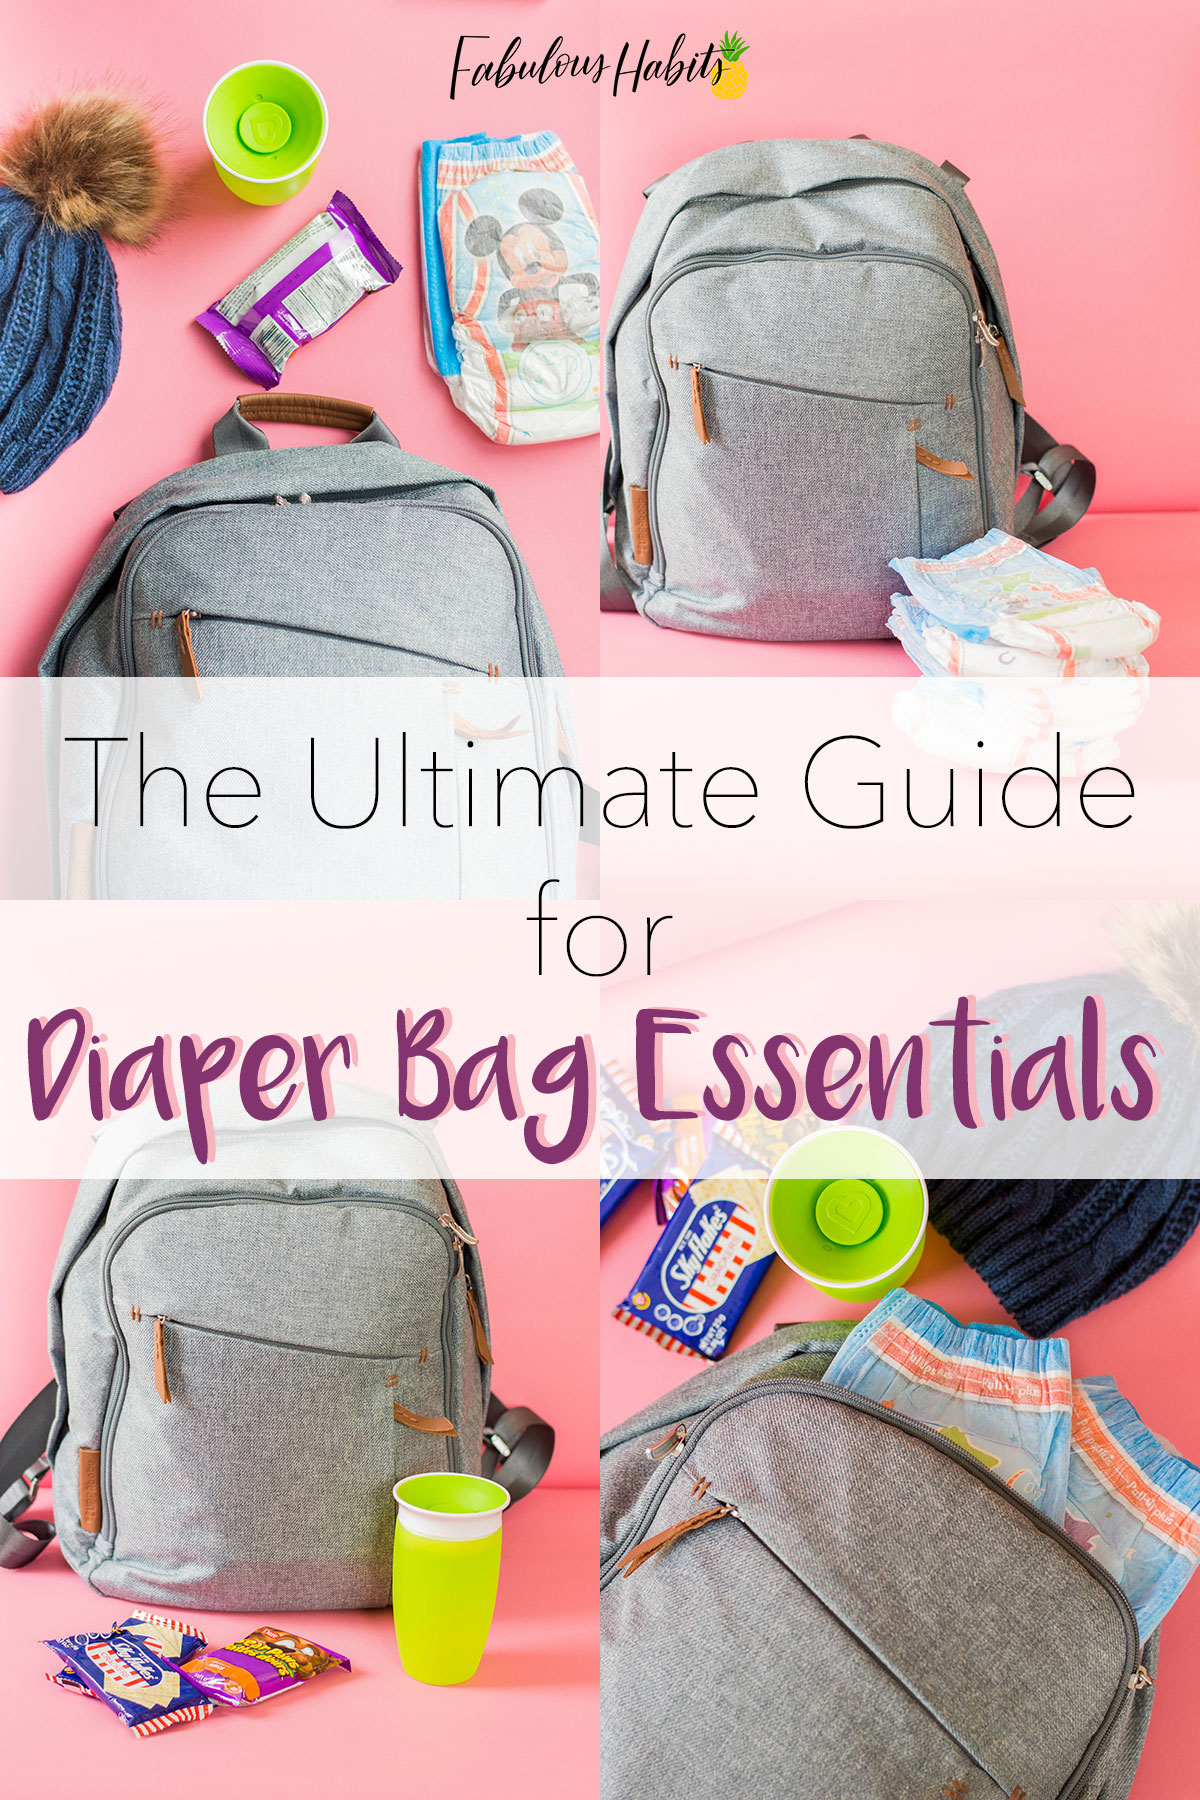 Got your diaper bag list ready? Don't worry, we got it for ya! Here is the ultimate guide for diaper bag essentials! #diaperbagessentials